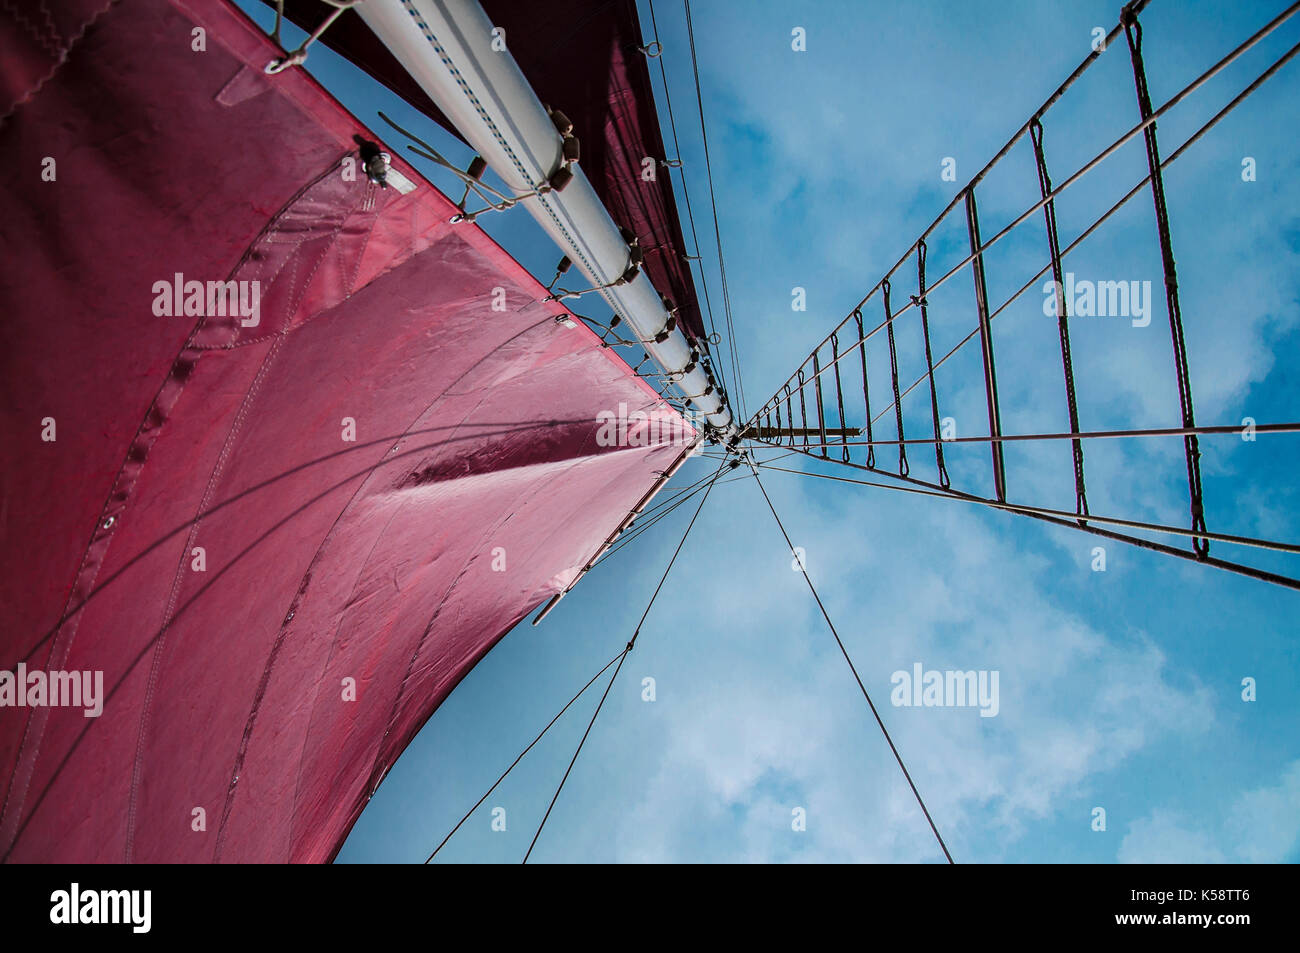 Traditional Gaff Rigged Sailing Boat Close up of Sails and Main Mast against the sky. - Stock Image